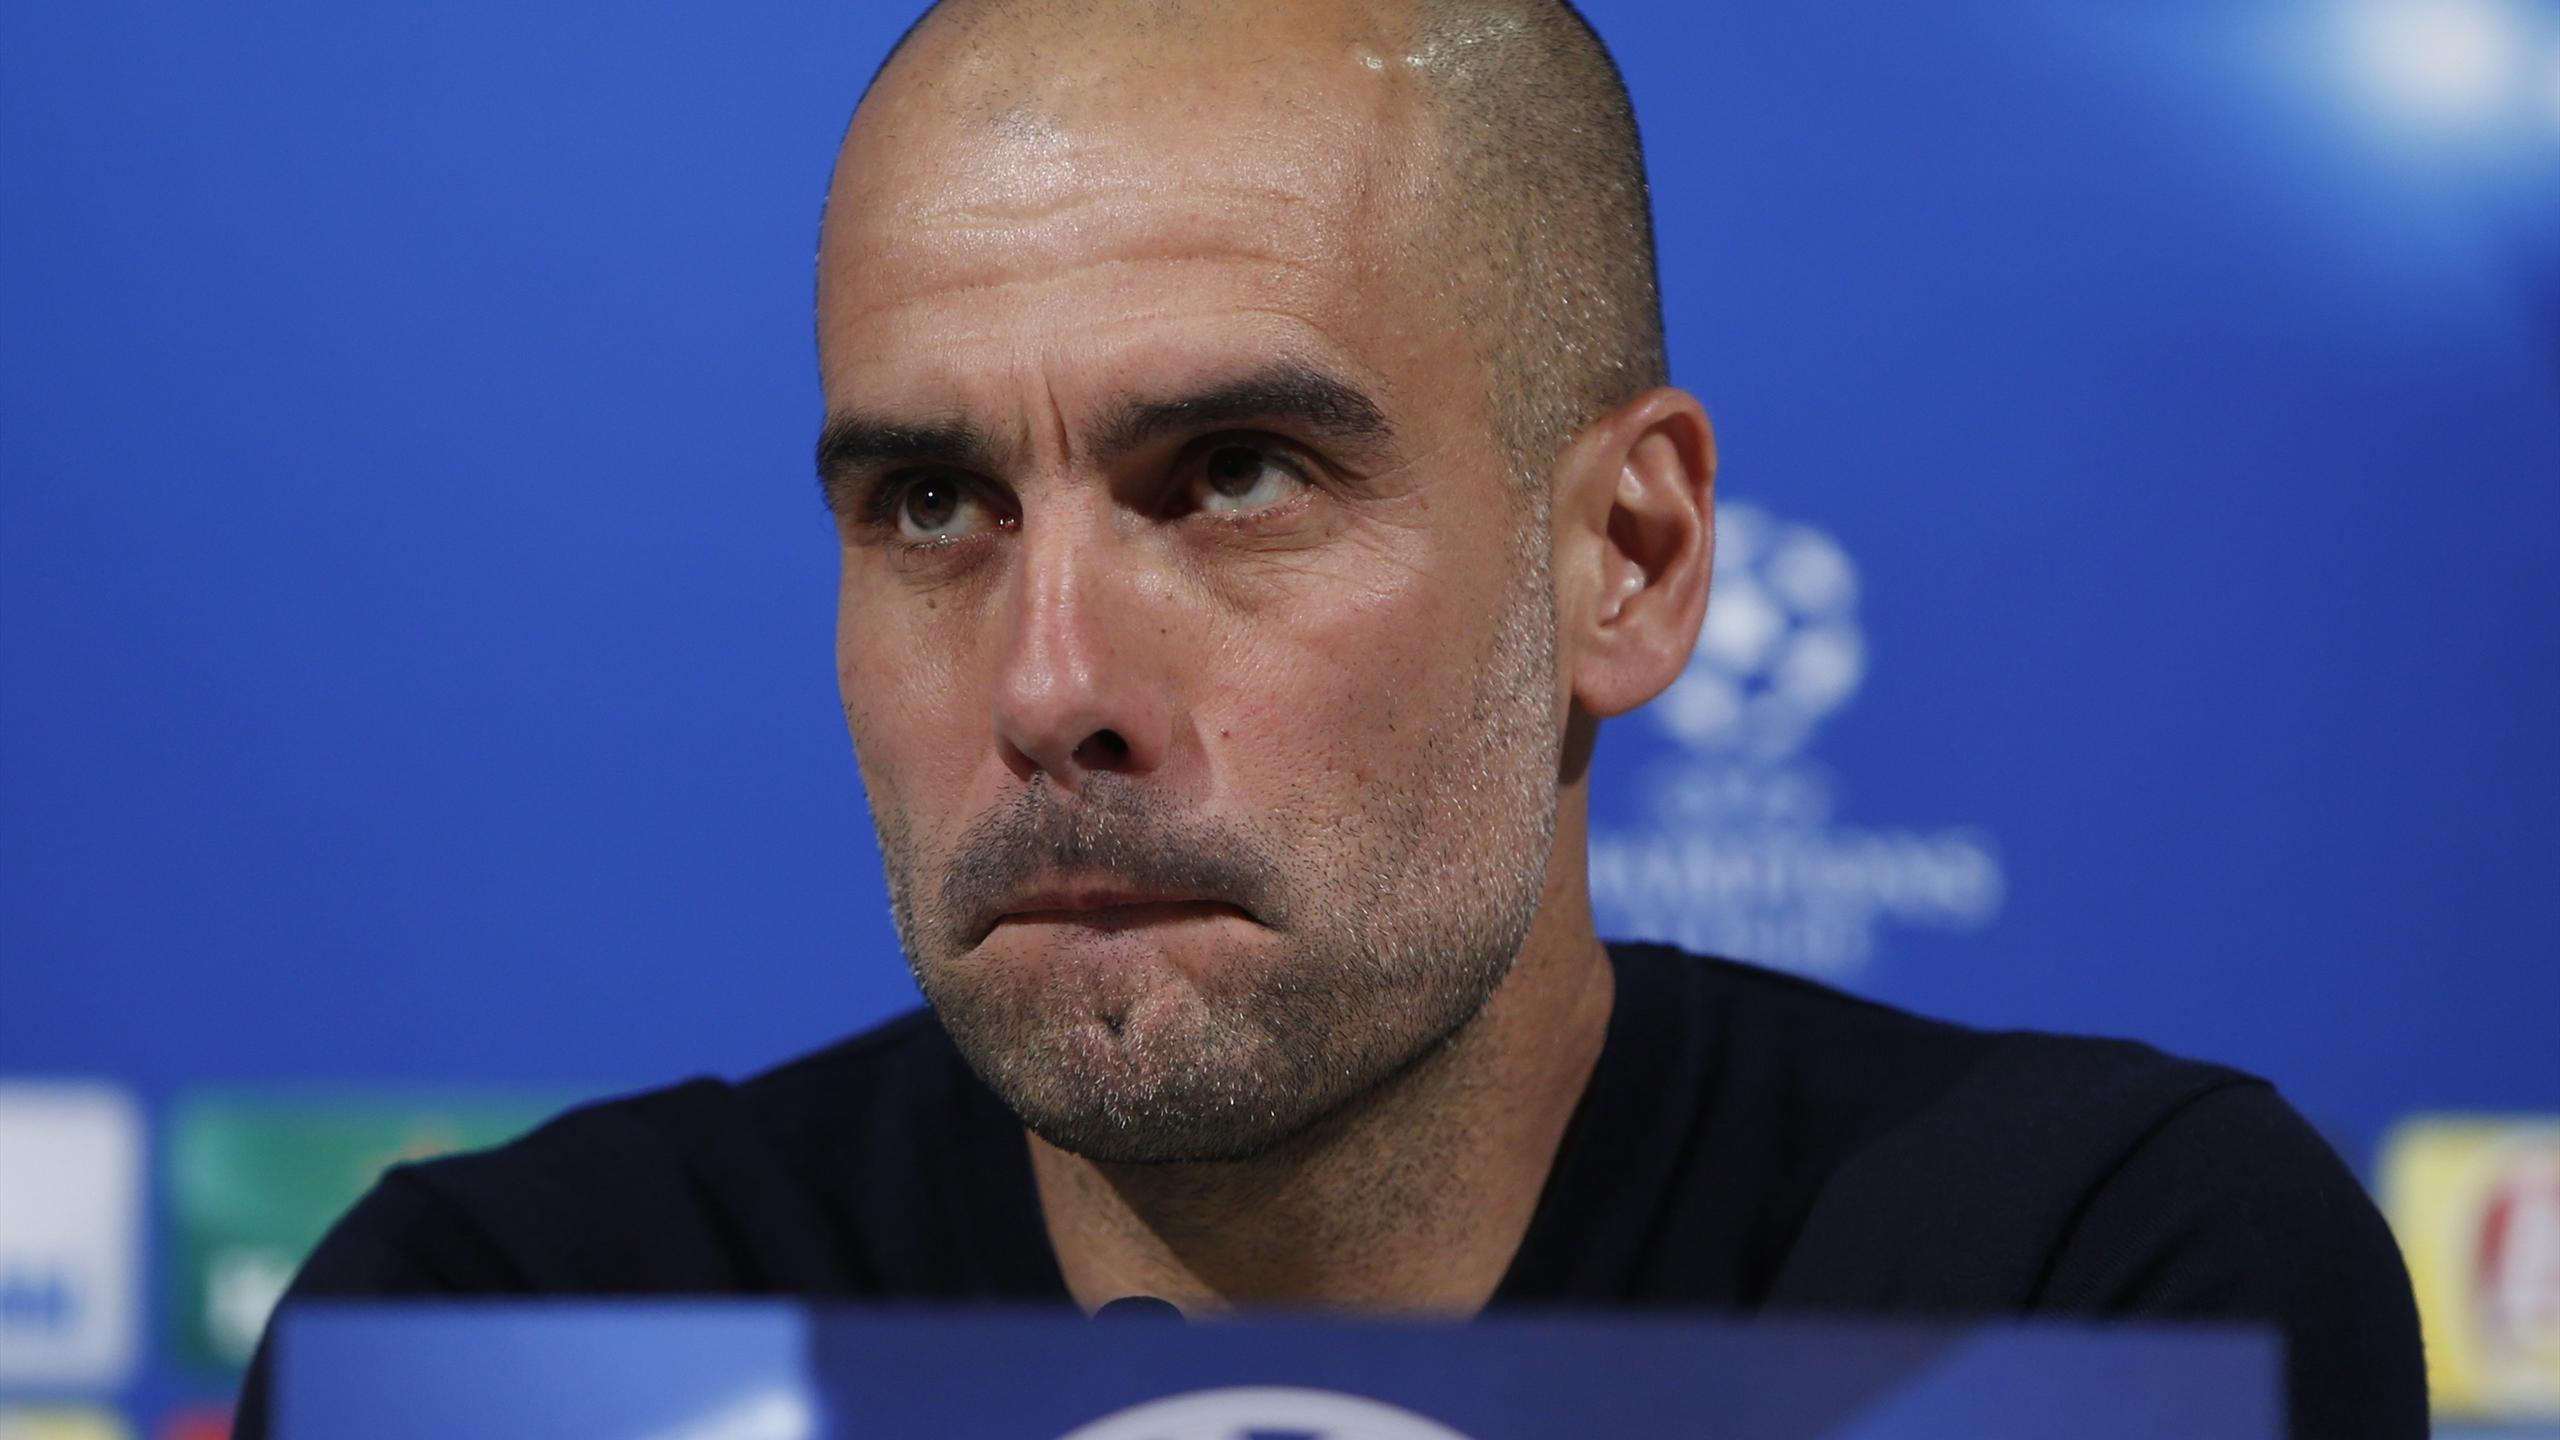 Bayern Munich's coach Pep Guardiola during news conference prior to UEFA Champions League semi-final return match against Atletico Madrid